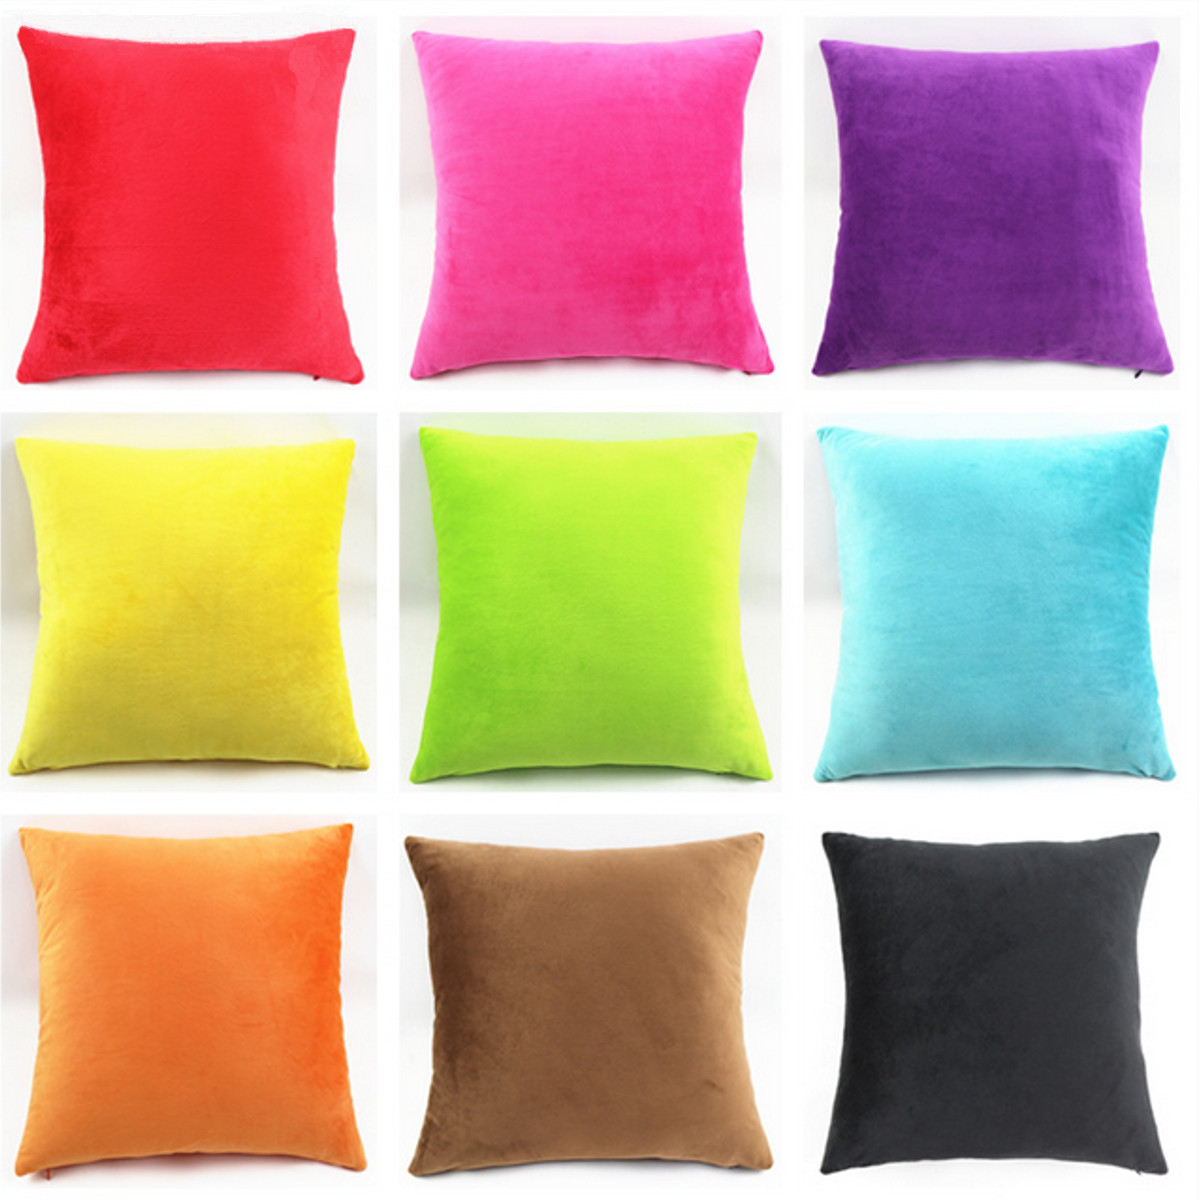 On Clearance 18''x18'' Pure Color Linen Cotton Throw Pillow Covers Decorative Pillow Cases Protector with Zipper Car Sofa Home Decor